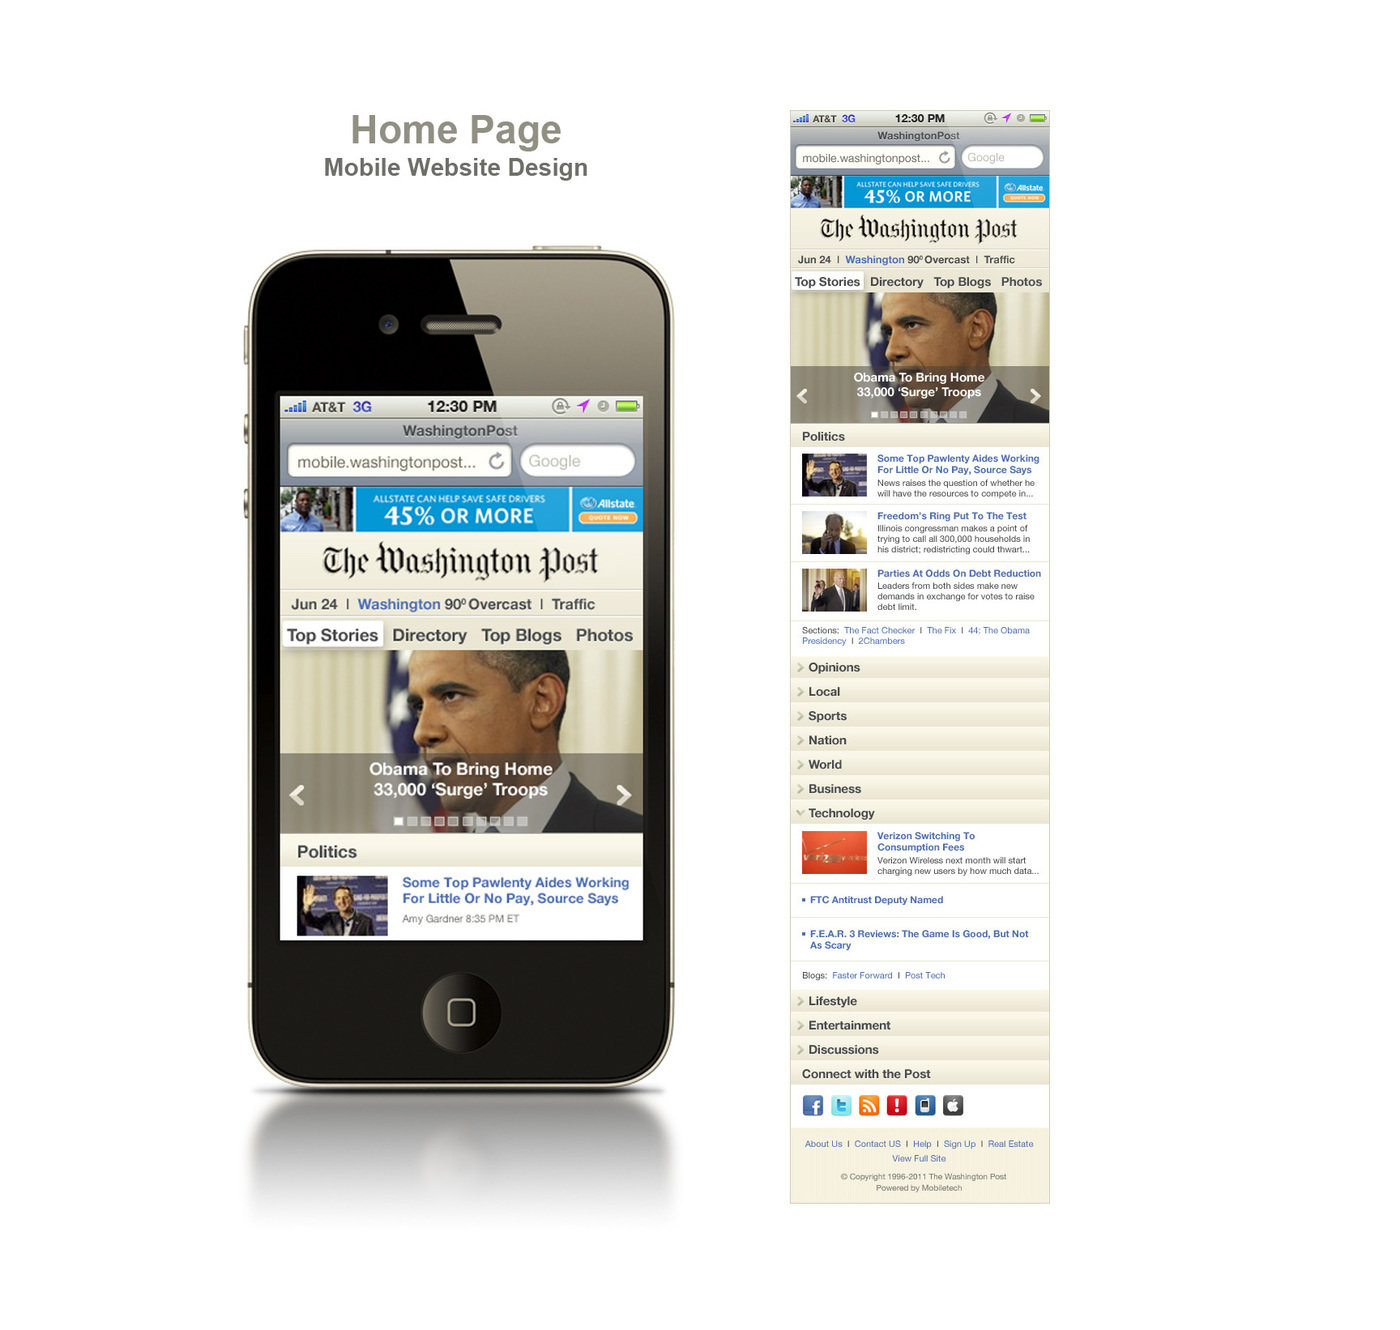 Washington Post Mobile Website   Redesign Exercise For Designing The  Washington Postu0027s Website Into A Mobile Site. The Project Assignment Was To  Design A ...